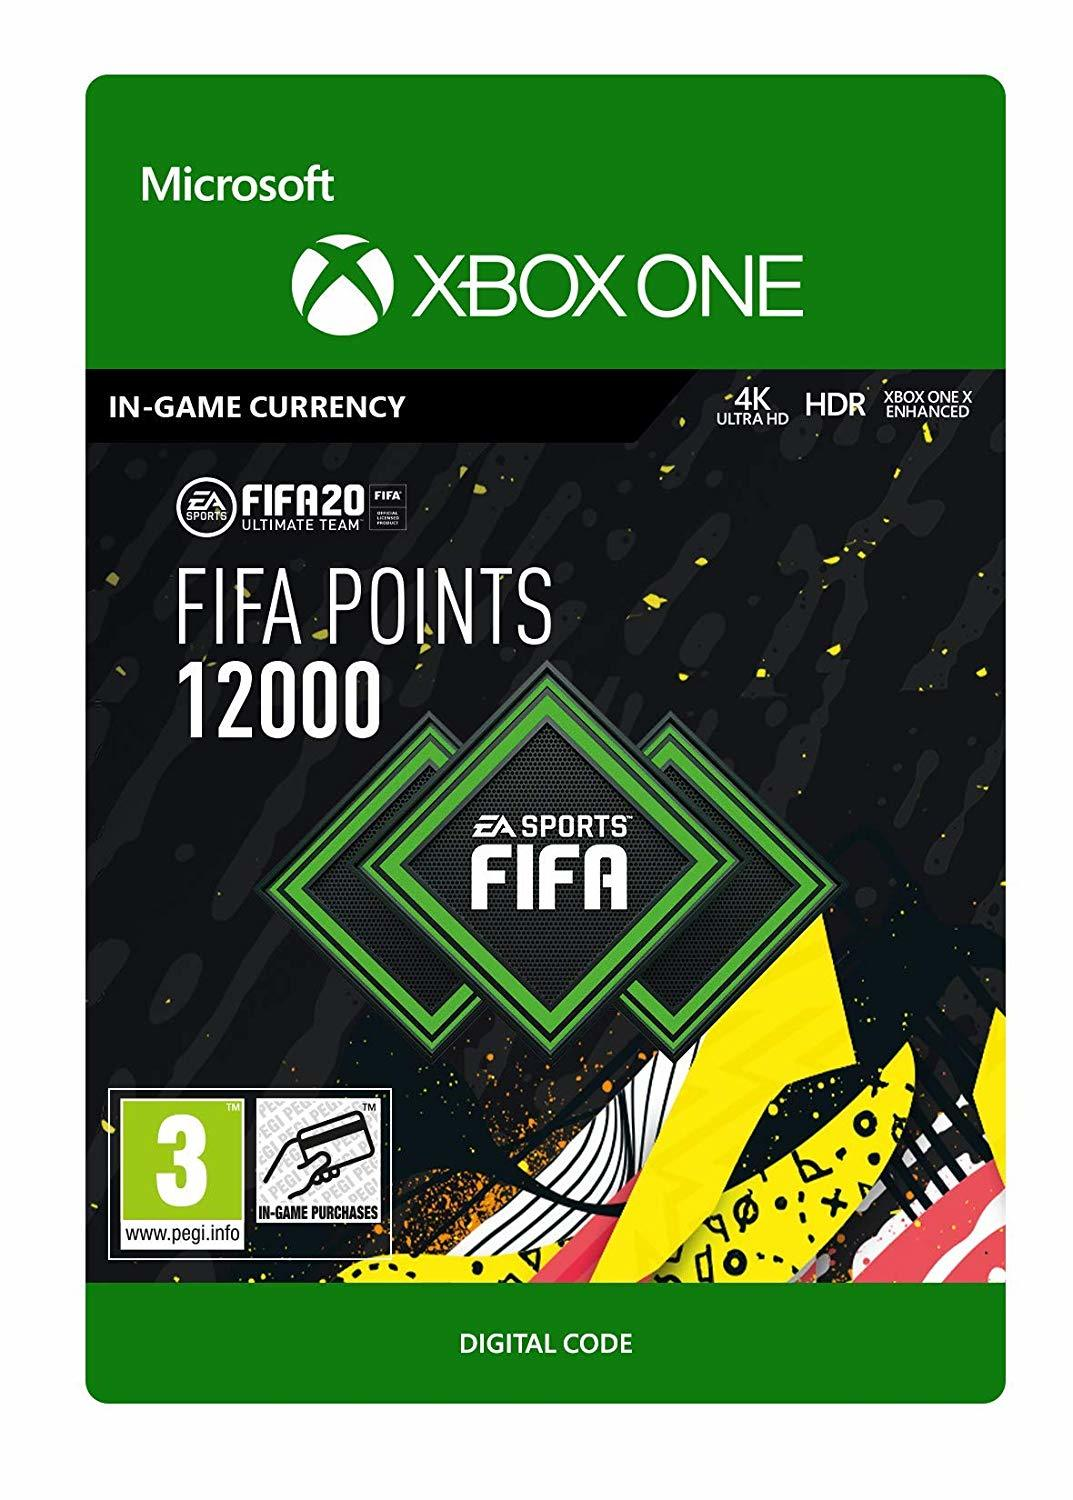 FIFA 20 Ultimate Team - 12000 FIFA Points (Digital Code) for Xbox One image